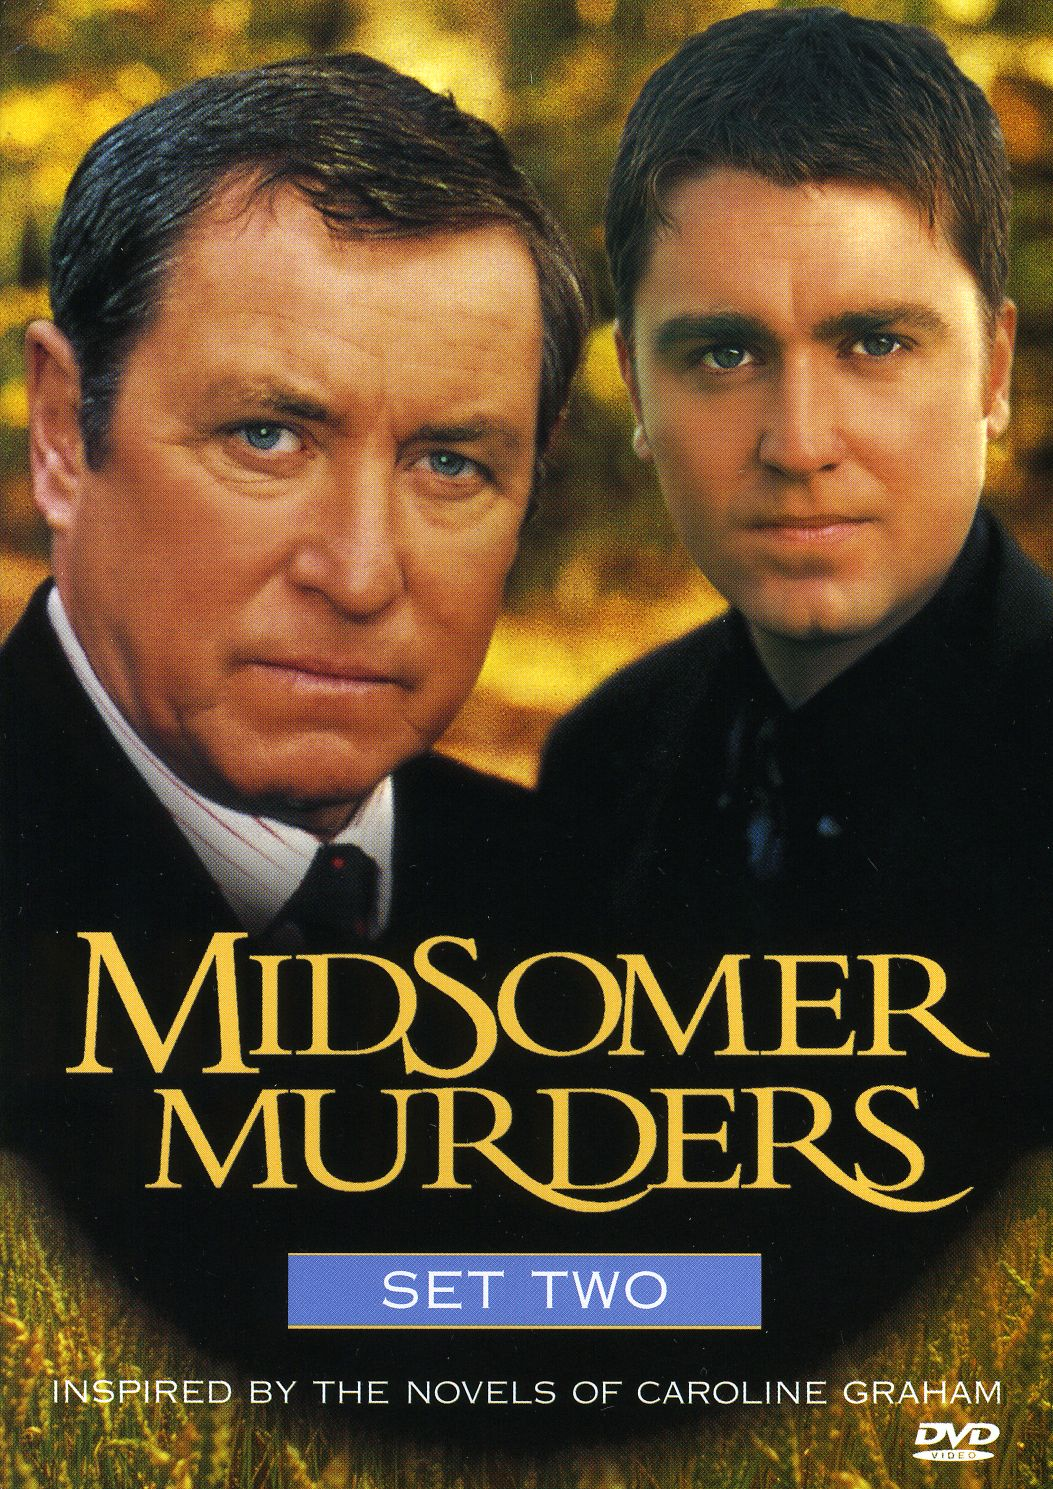 Midsomer Murders Set 2 (DVD)